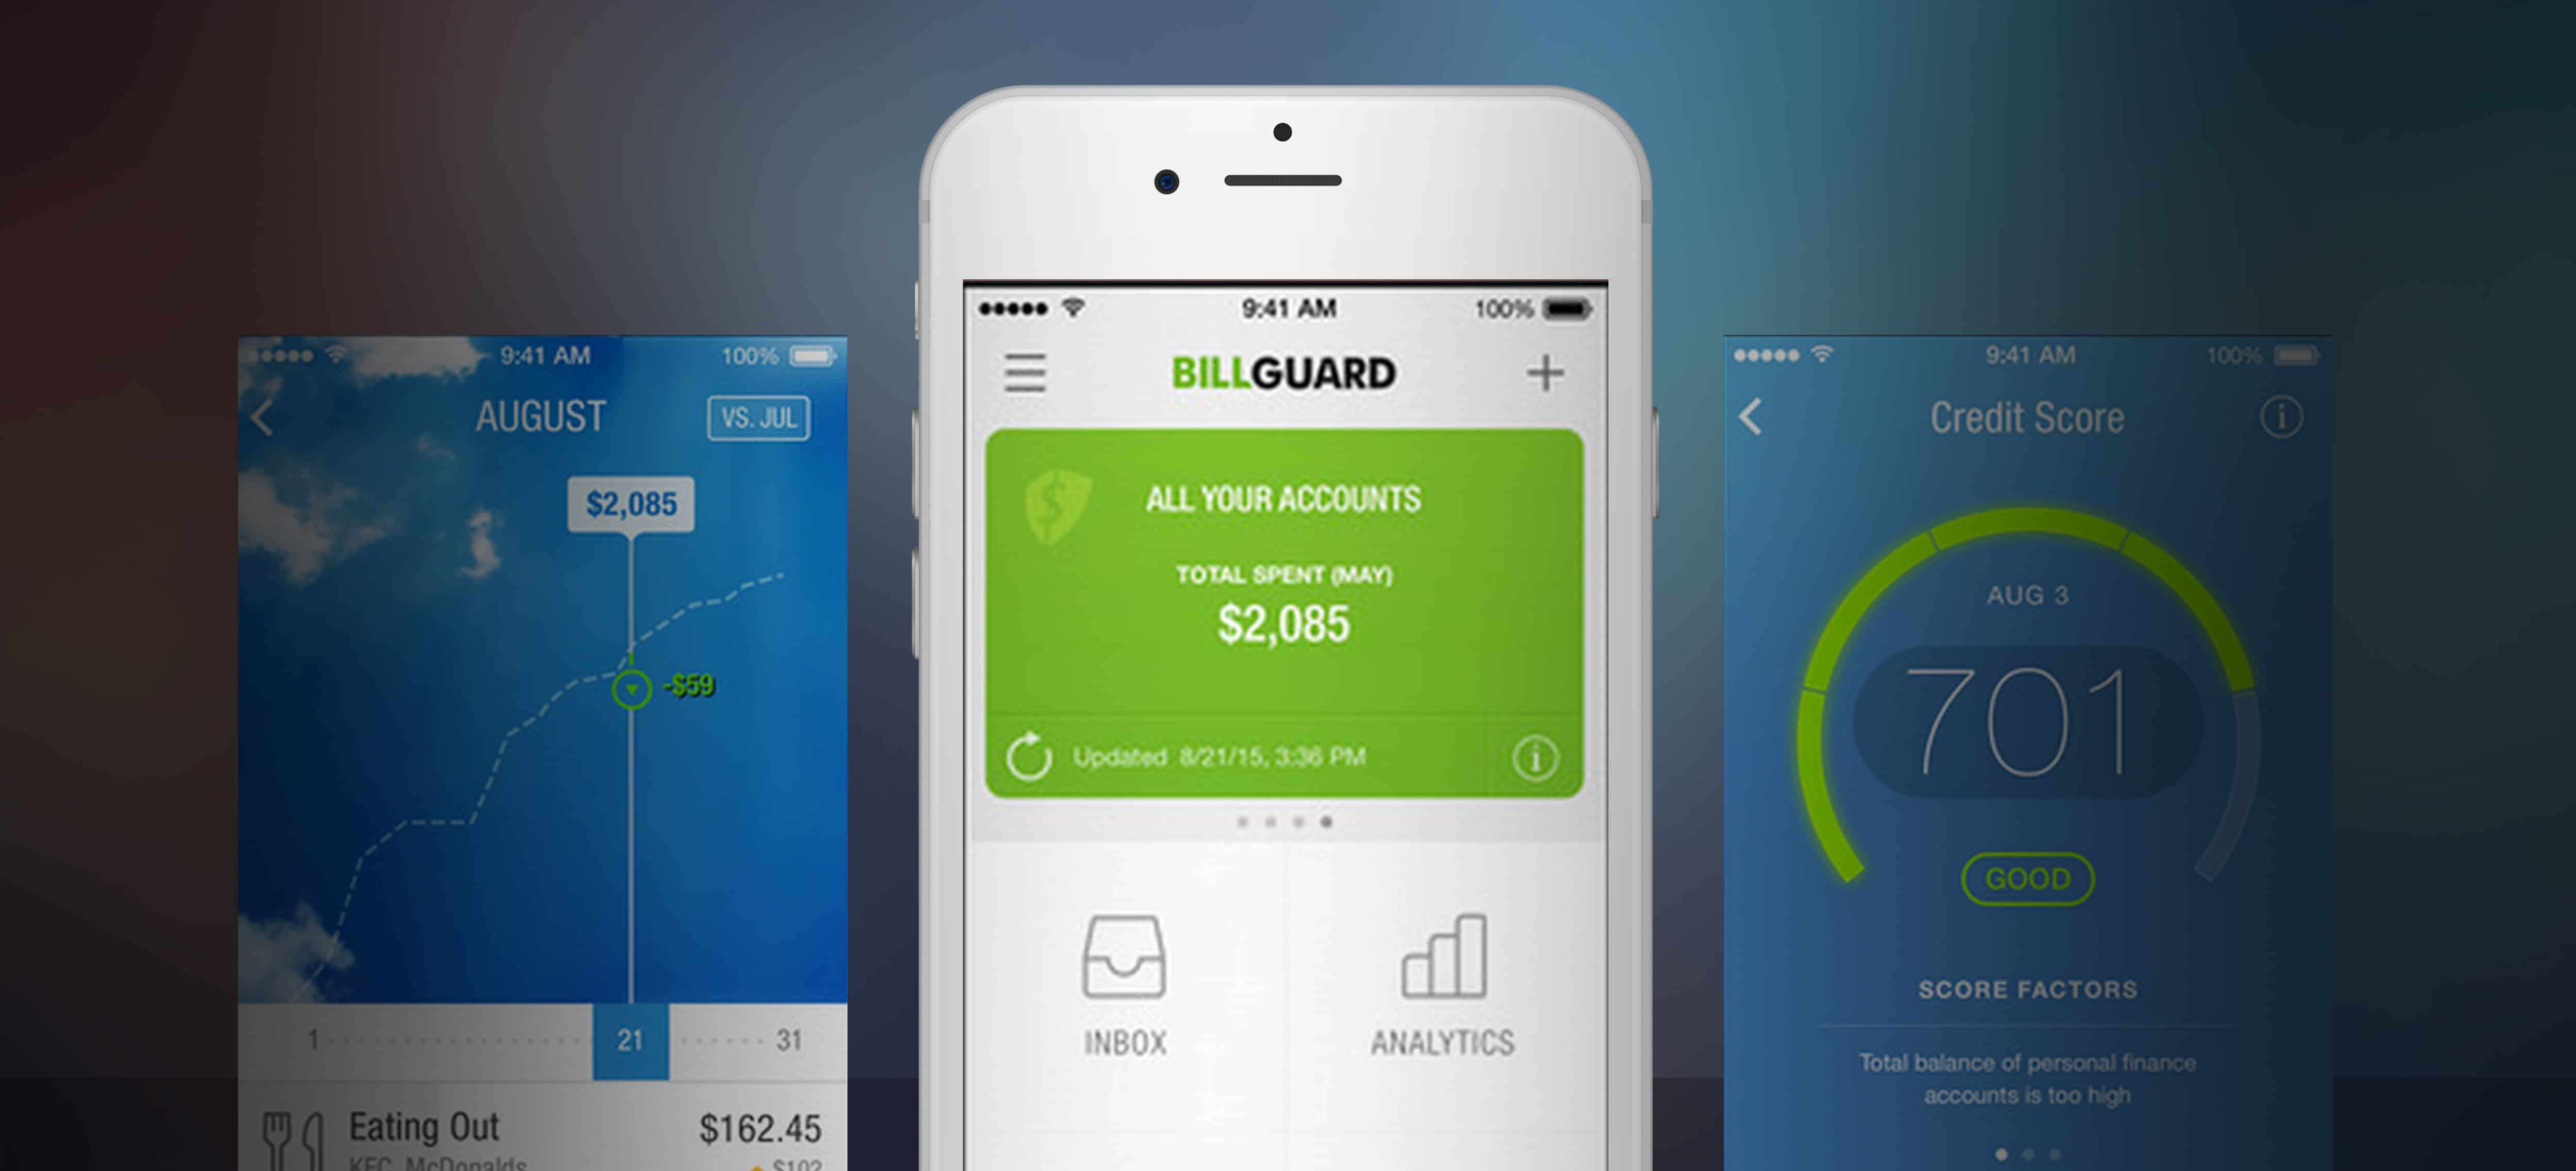 With Lead Generation and More in Mind, Prosper Marketplace buys BillGuard